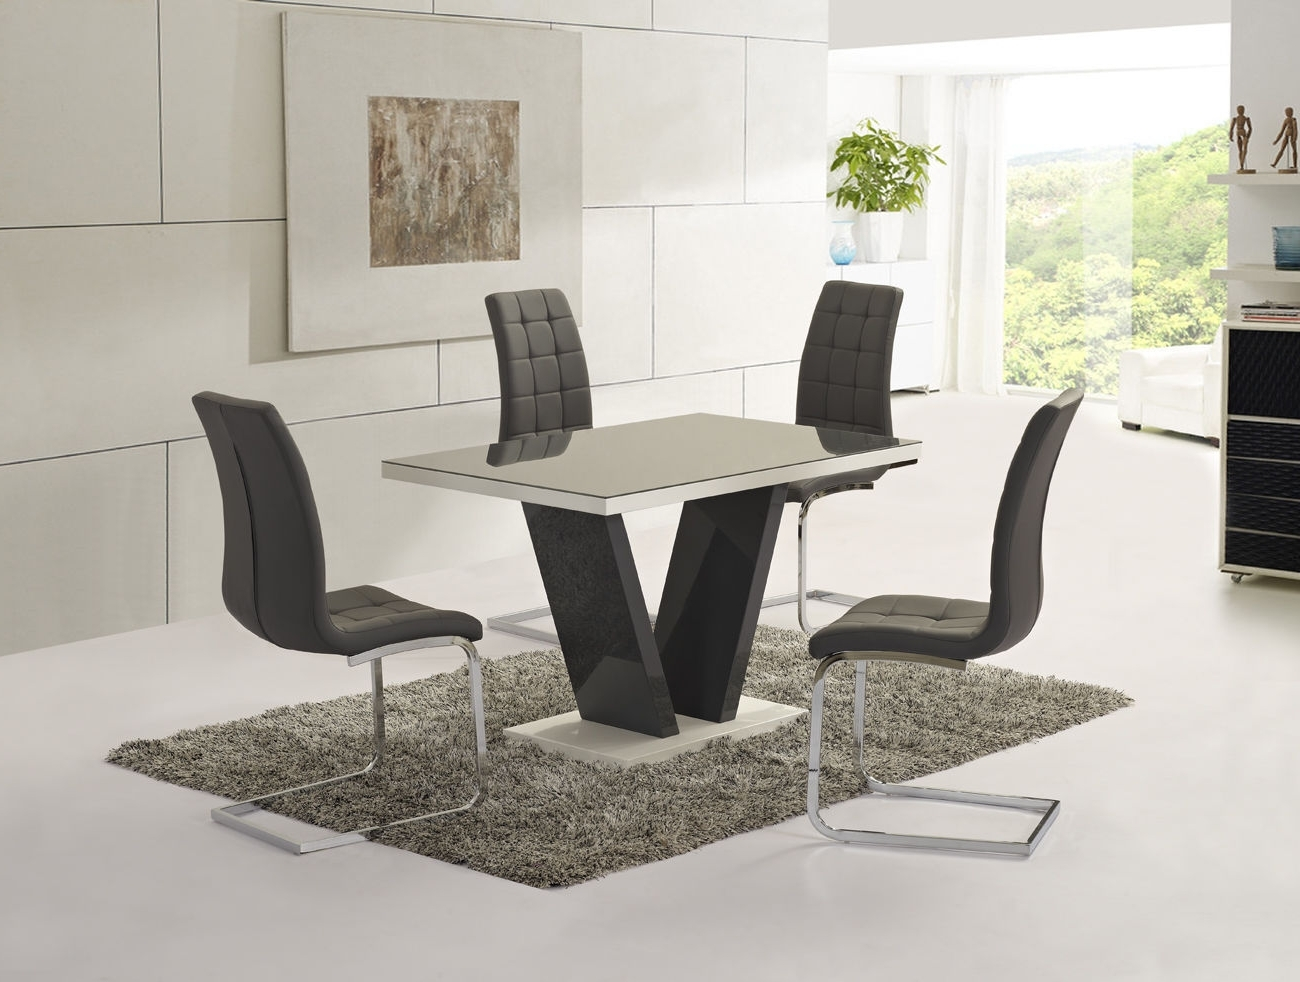 Most Popular Black Glass Dining Tables 6 Chairs With Regard To Ga Vico Gloss Grey Glass Top Designer 160Cm Dining Set – 4 6 Grey (Gallery 16 of 25)